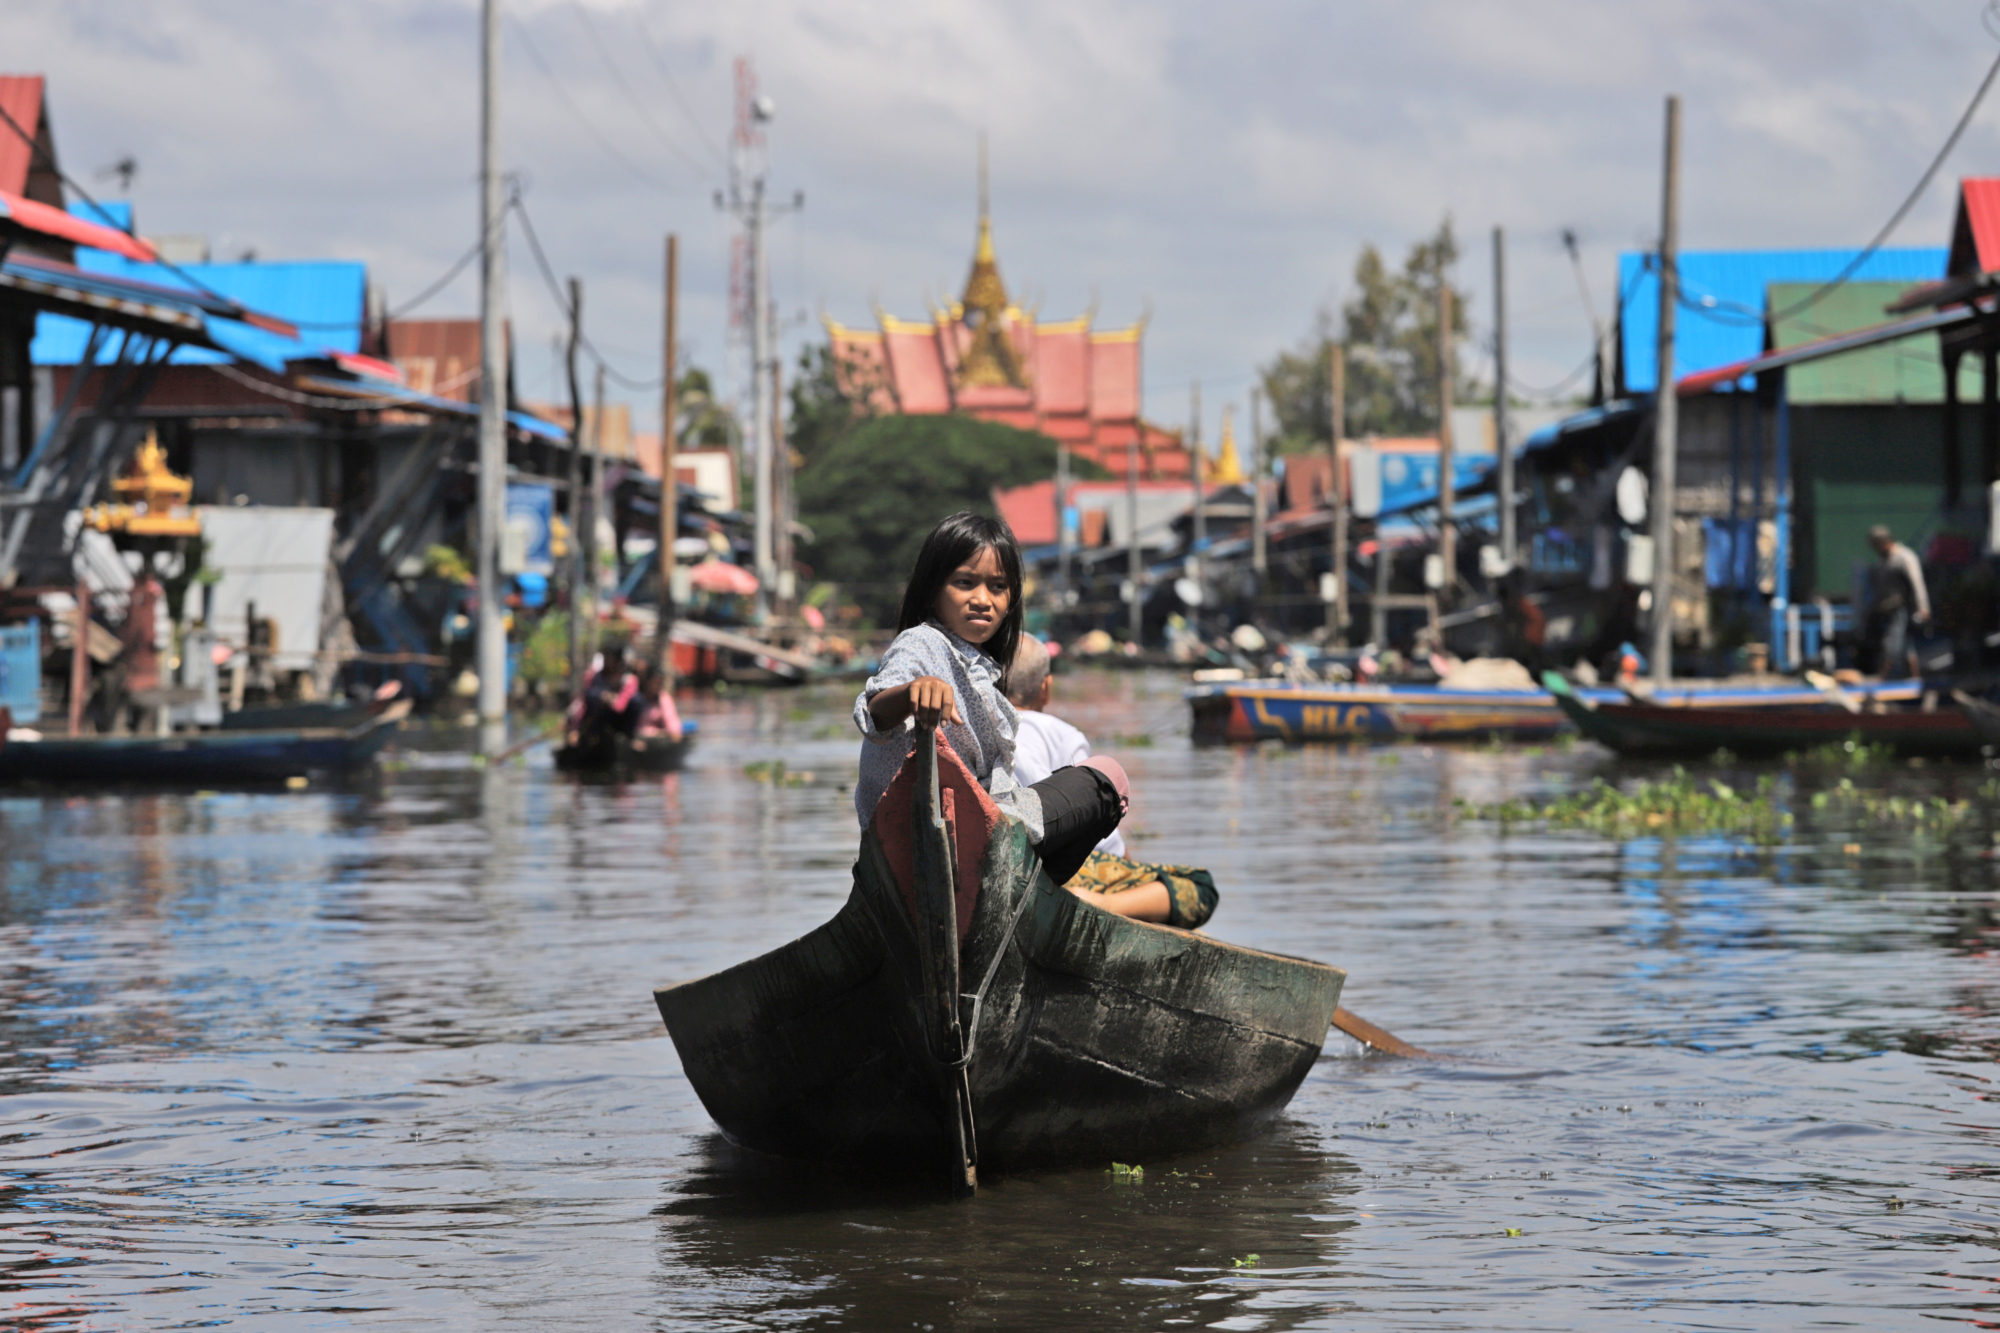 Mark Phoenix, 'The High Street, Kompong Phluk Floating Village' (2018)